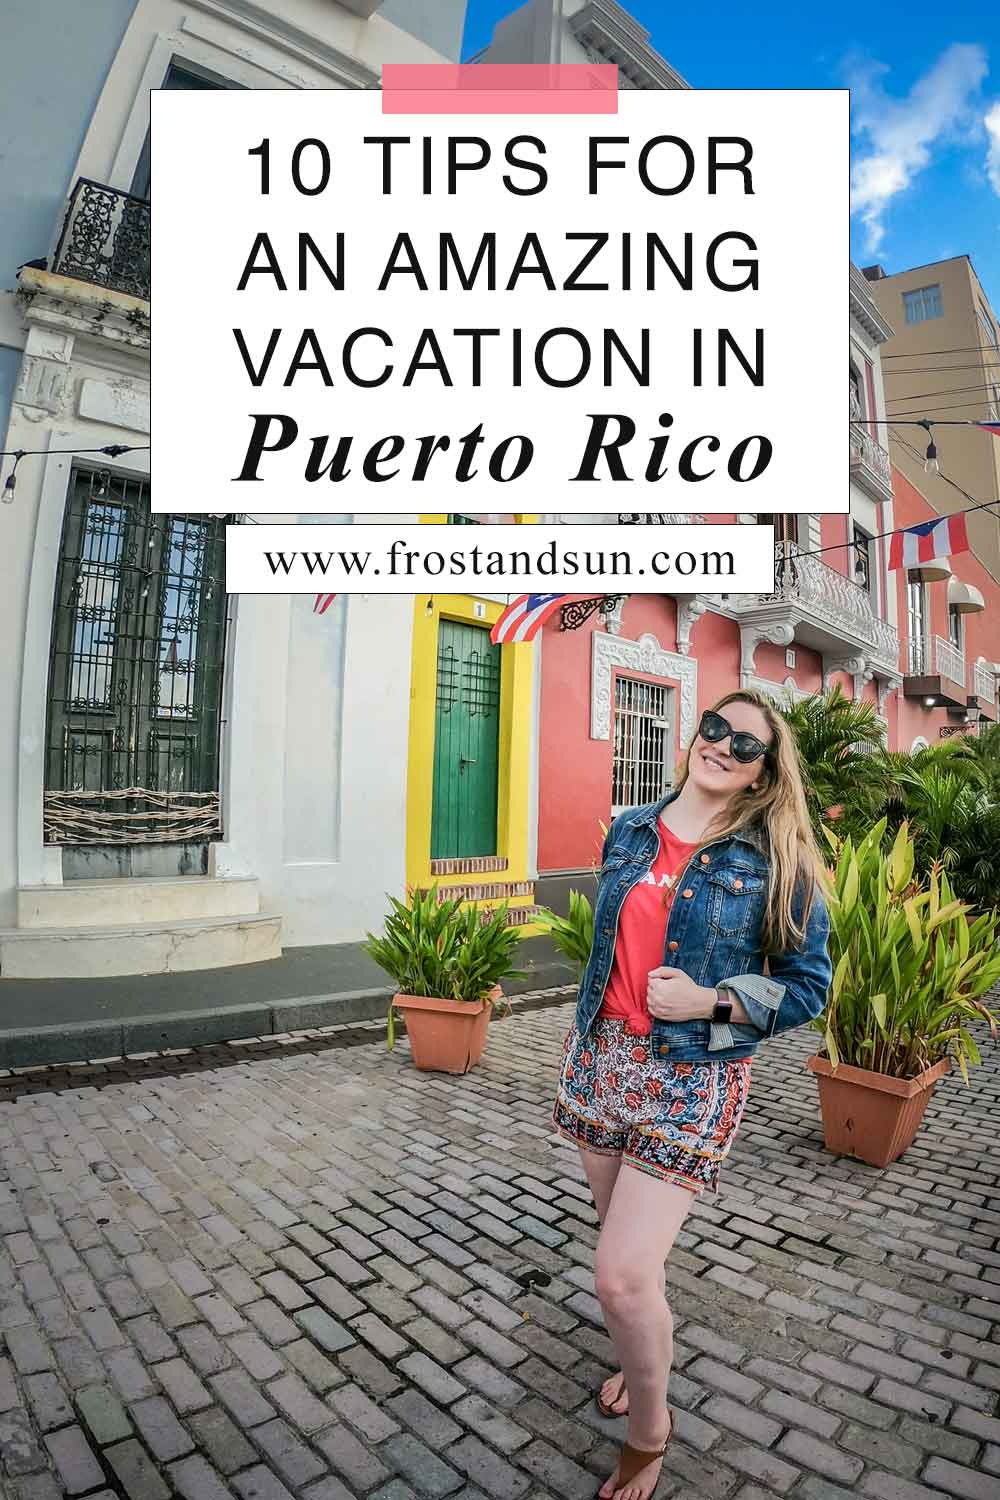 10 Tips for Planning an Amazing Puerto Rico Vacation